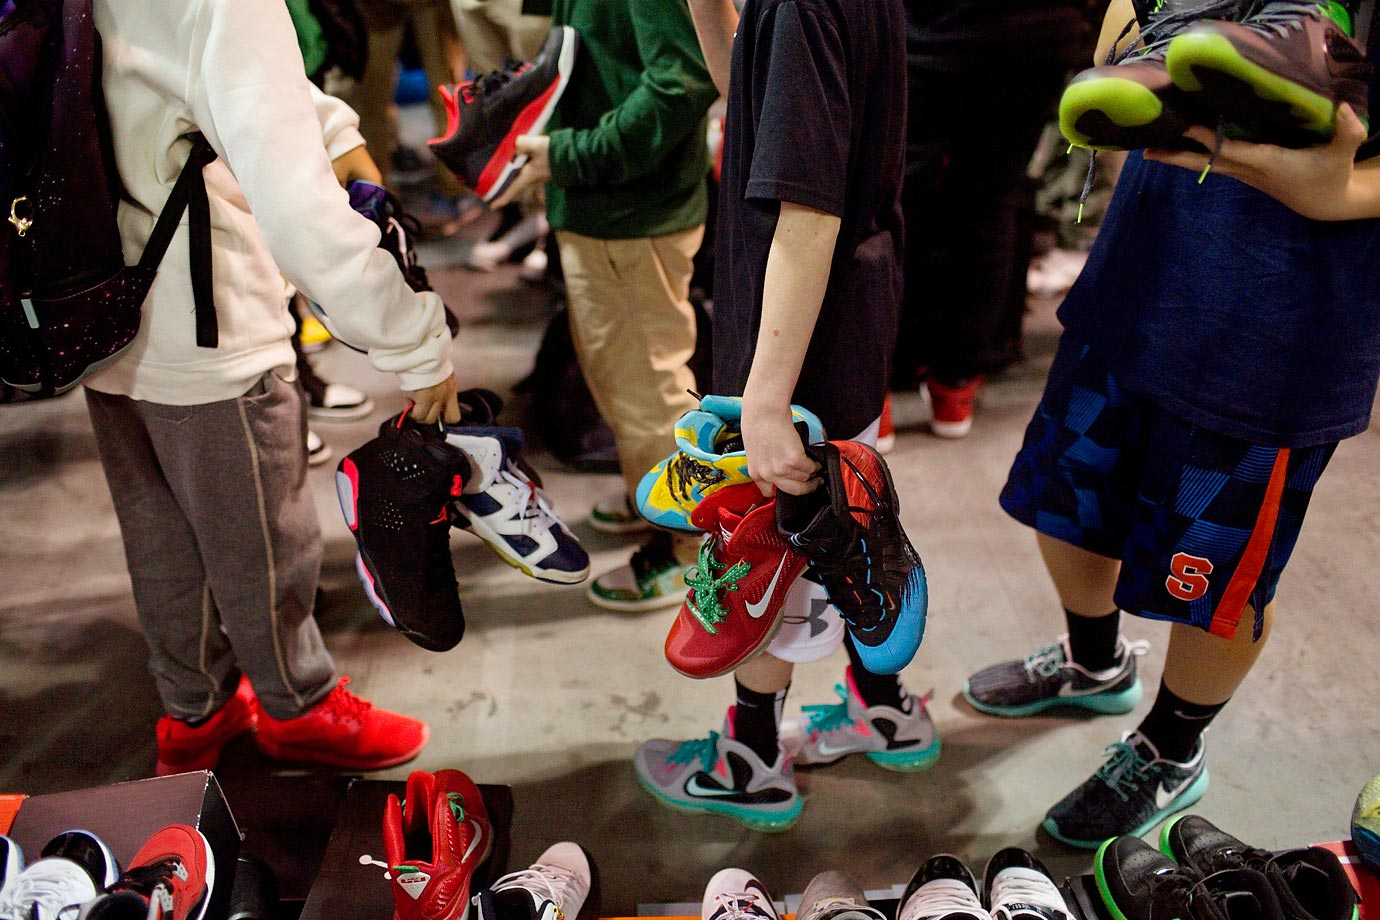 "Known as ""The Greatest Sneaker Show on Earth,"" Sneaker Con returned to New York City on Dec. 6 for its biggest event yet. Seas of shoe fiends filled up the Javits Center in hopes of buying, selling, trading and showing off their sneakers. With more than 300 vendors and 50,000 sneakers, the scene was a sneaker lover's mecca. Check out the scenes from 2014 Sneaker Con."